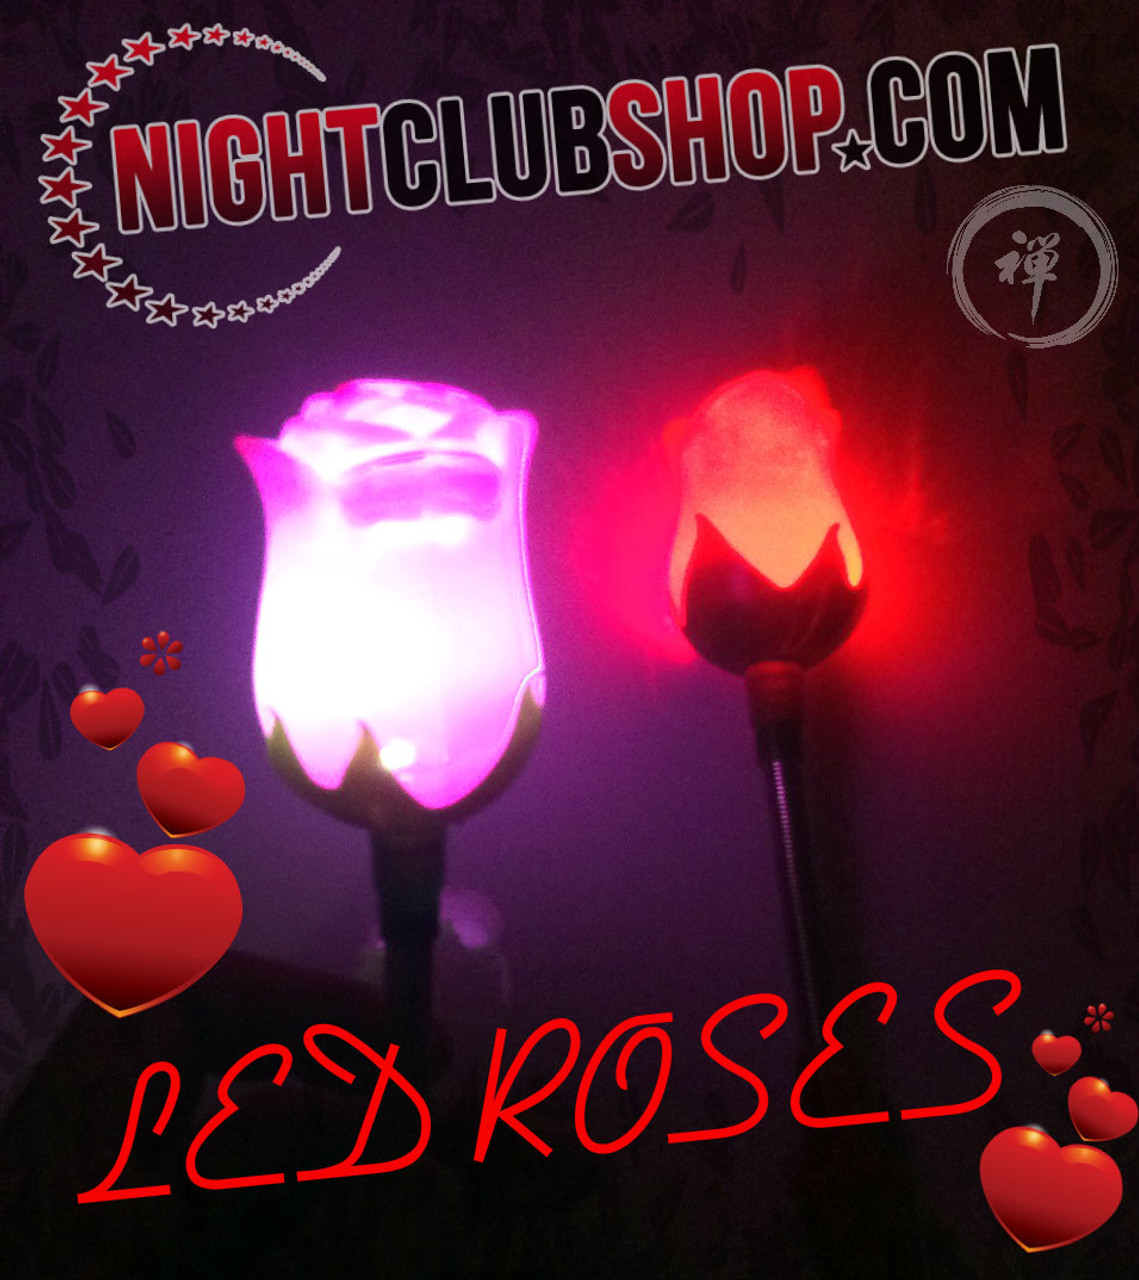 LED Rose, Glow Rose, Rose, LED,flower,Petal, Light up, illuminated,Glow, glowing,  Valentine, valentines, Party favor, Wedding, Keepsake, Ladies Night, Promo, giveaway,sell, dozen,